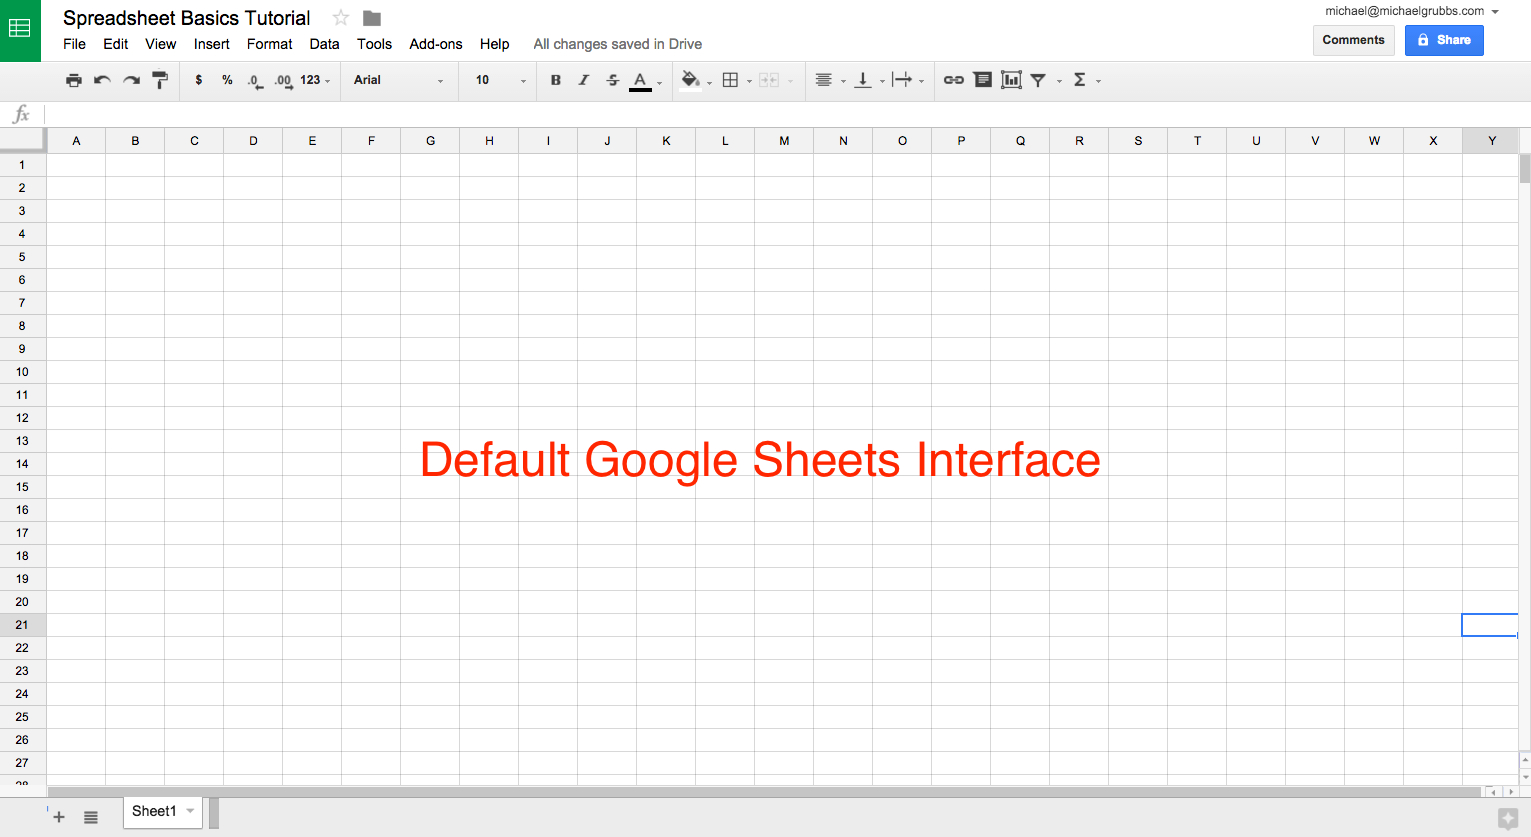 How To Create A Spreadsheet In Word For Google Sheets 101: The Beginner's Guide To Online Spreadsheets  The